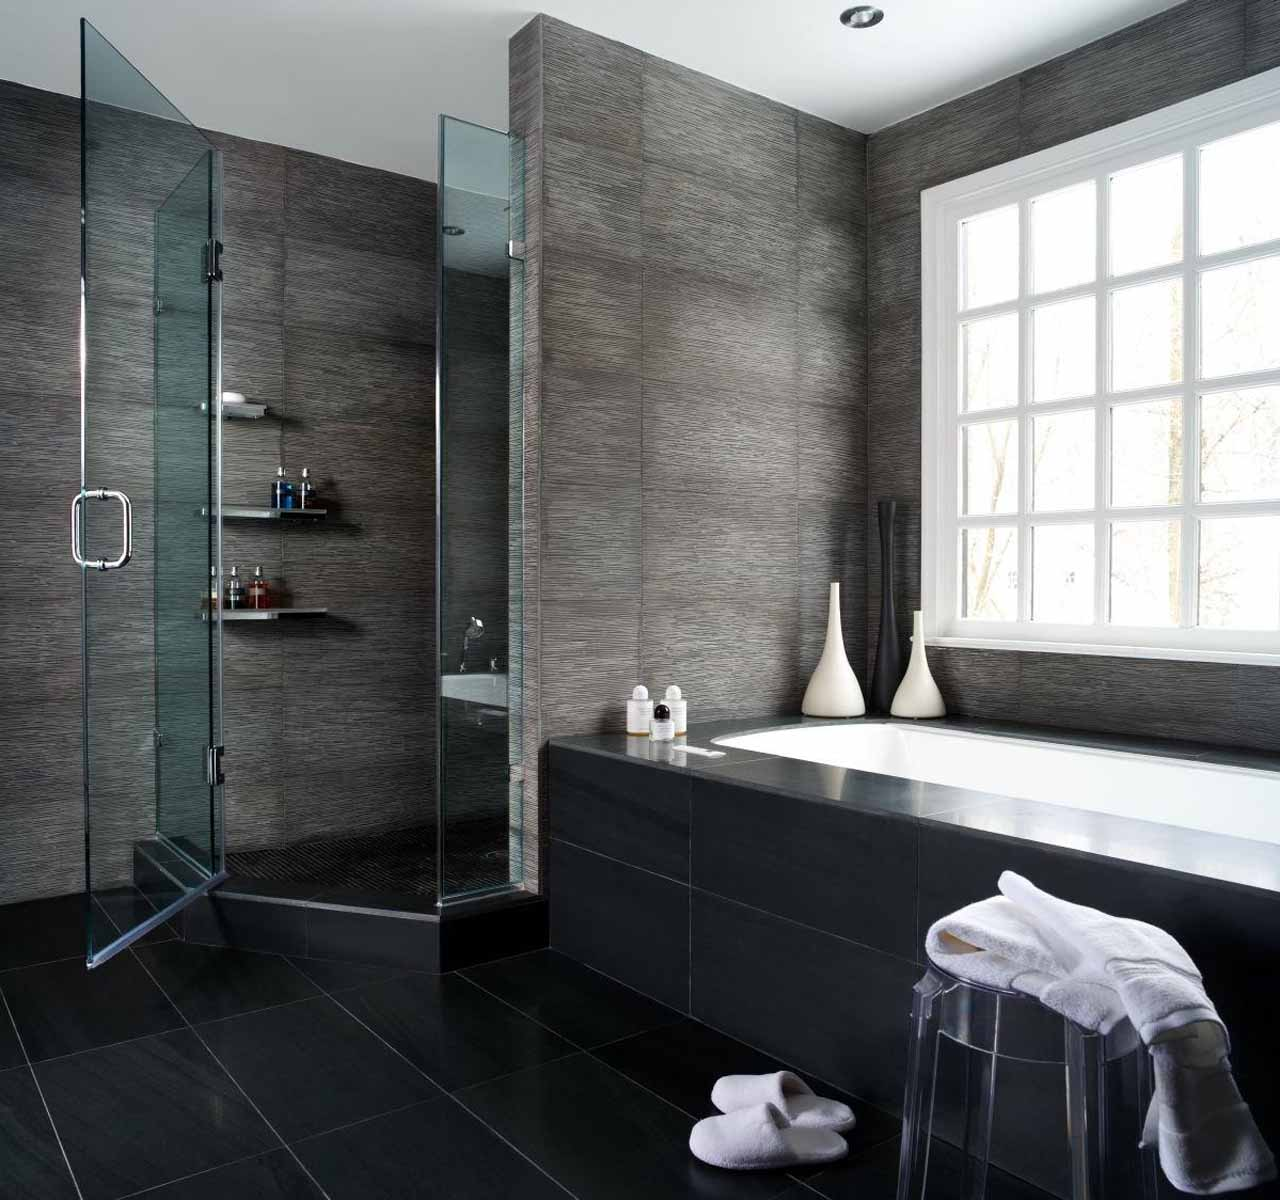 Bathroom Renovation Stunning Bathroom Shower Renovation Ideas .